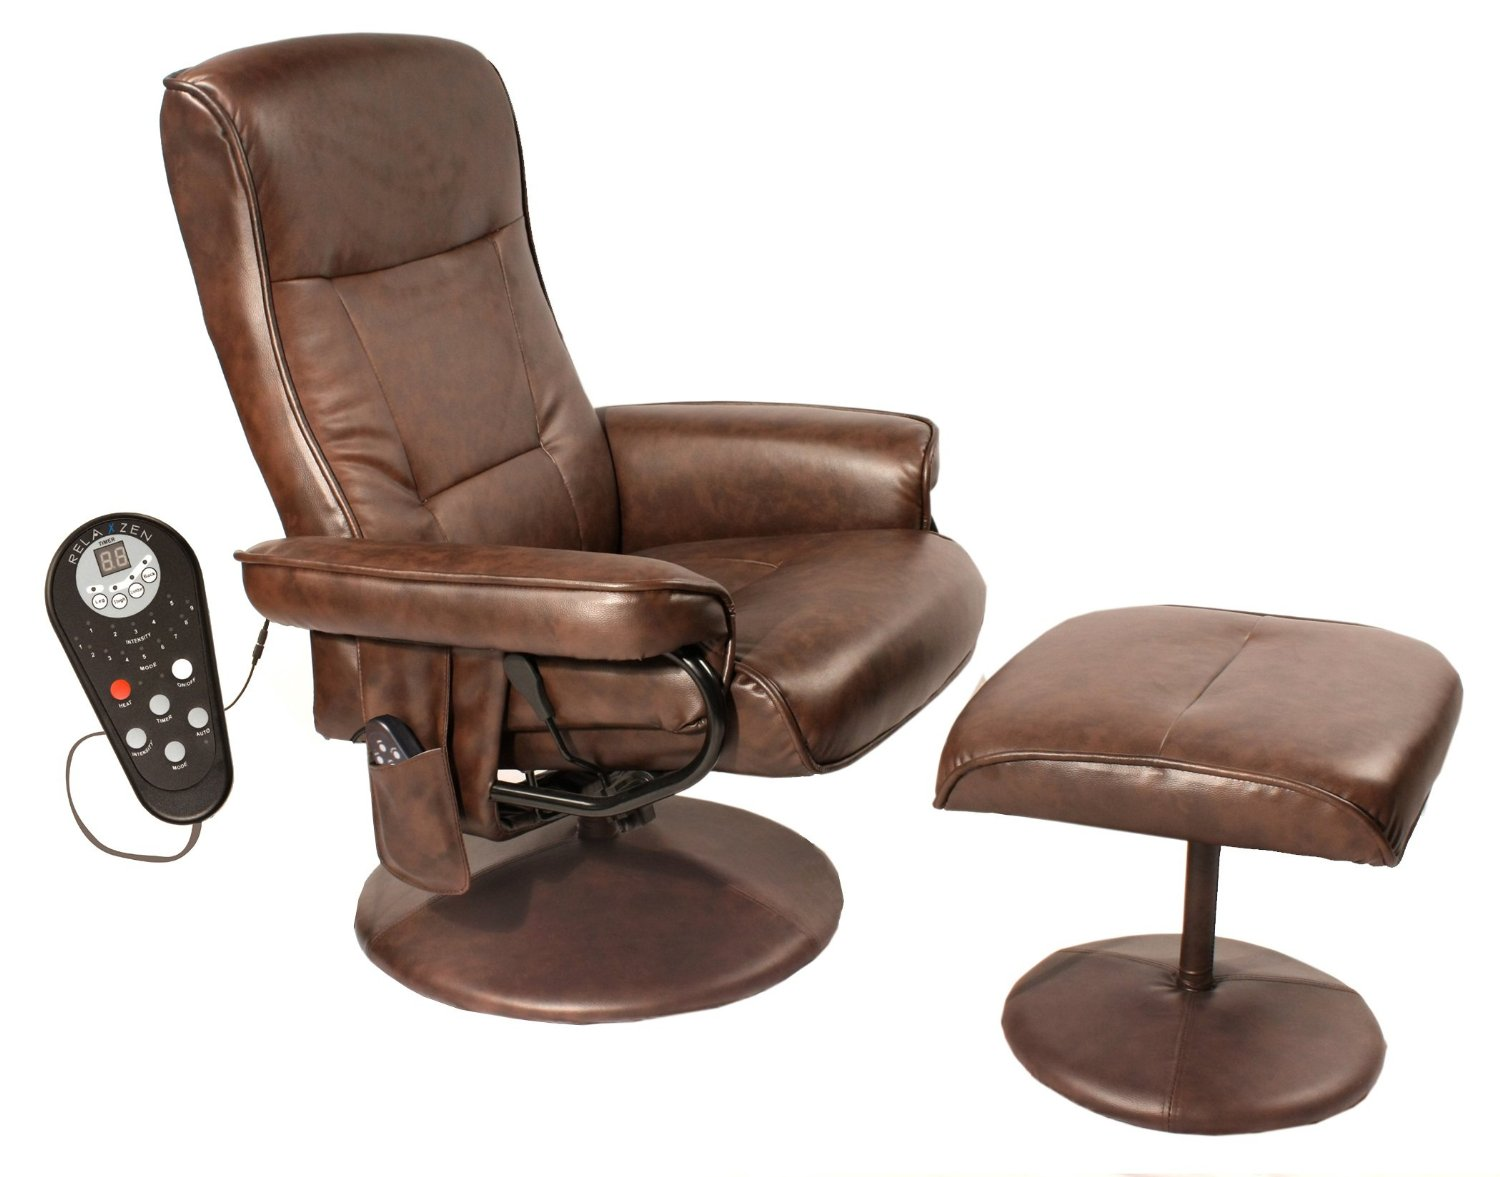 recliner massage chair sitting area chairs relaxzen lounge 60 425111 review hq